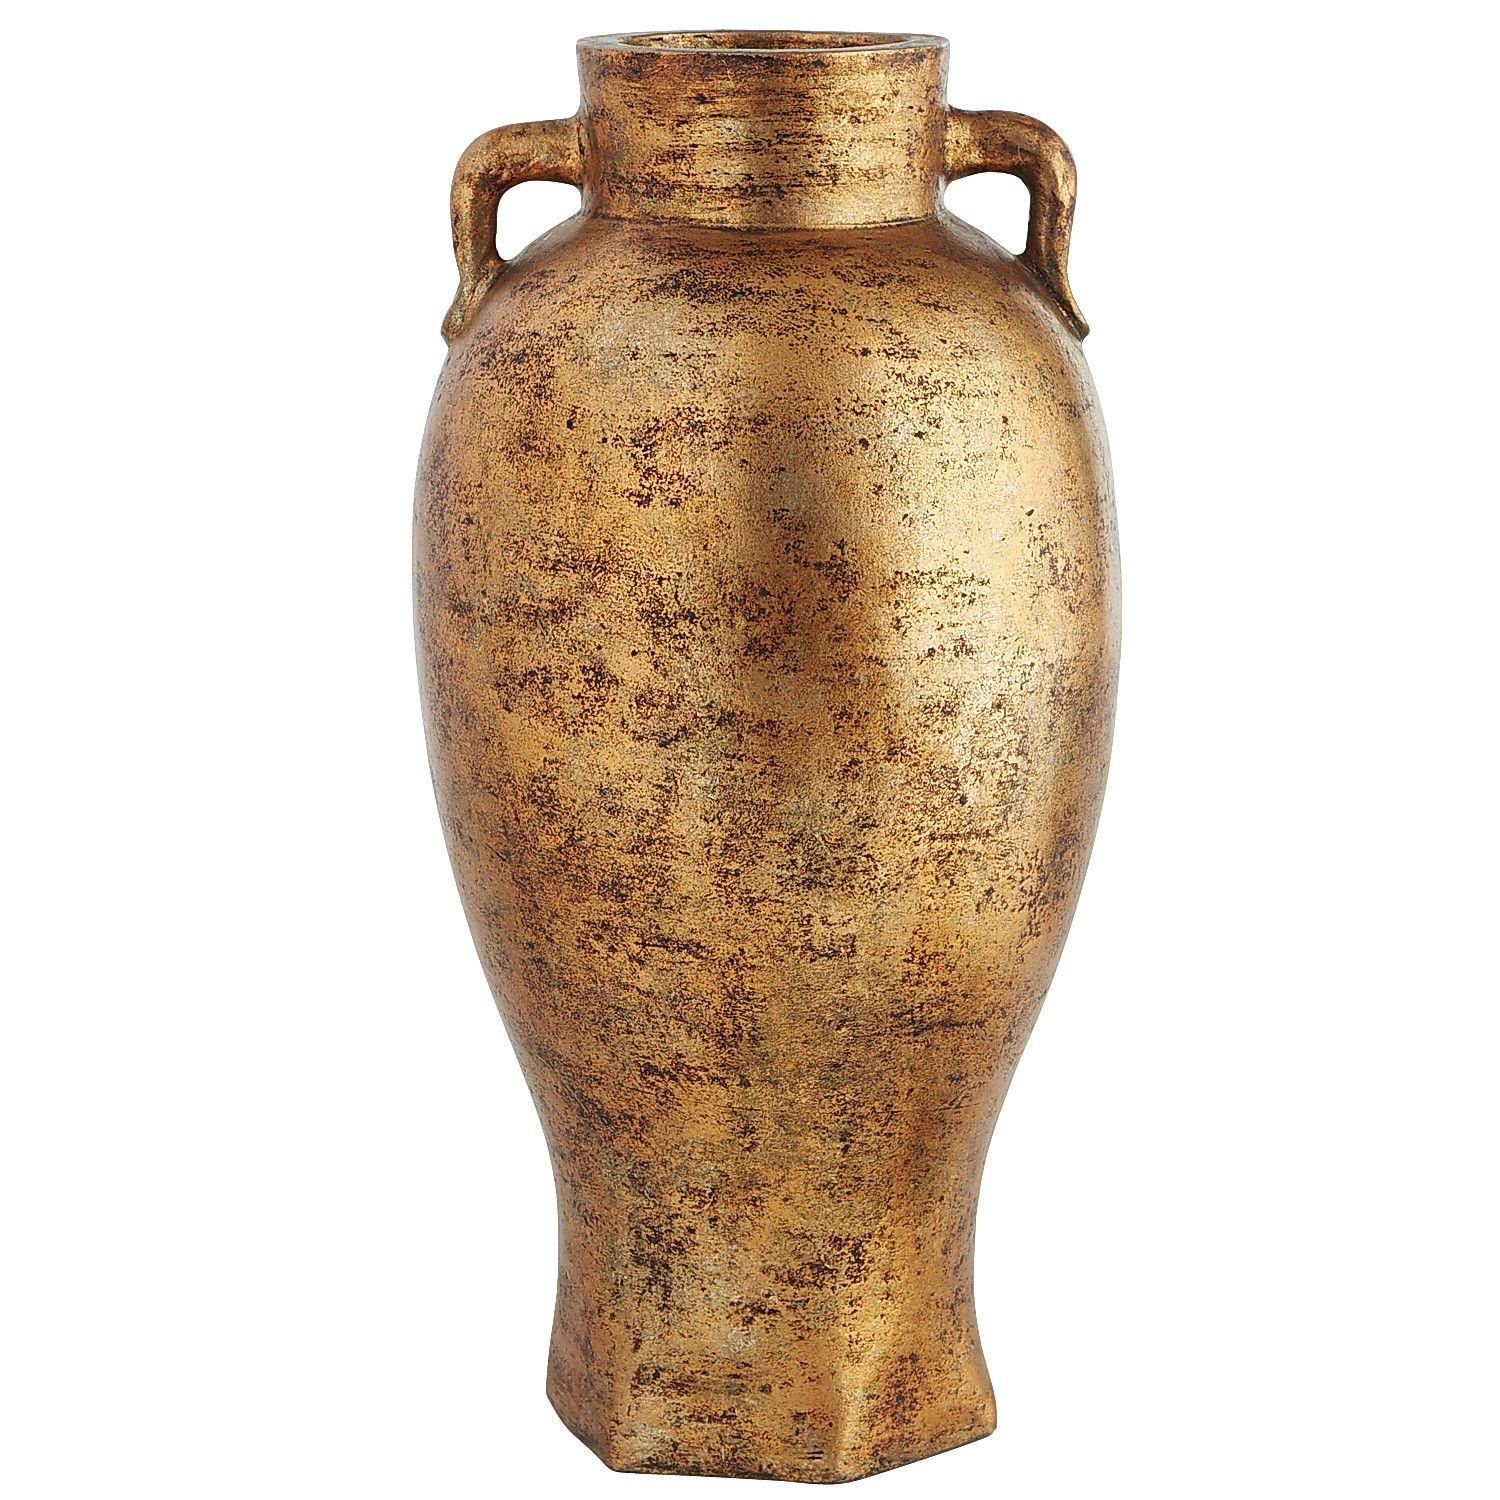 Copper Patina Floor Vase Terracotta Decor Vases